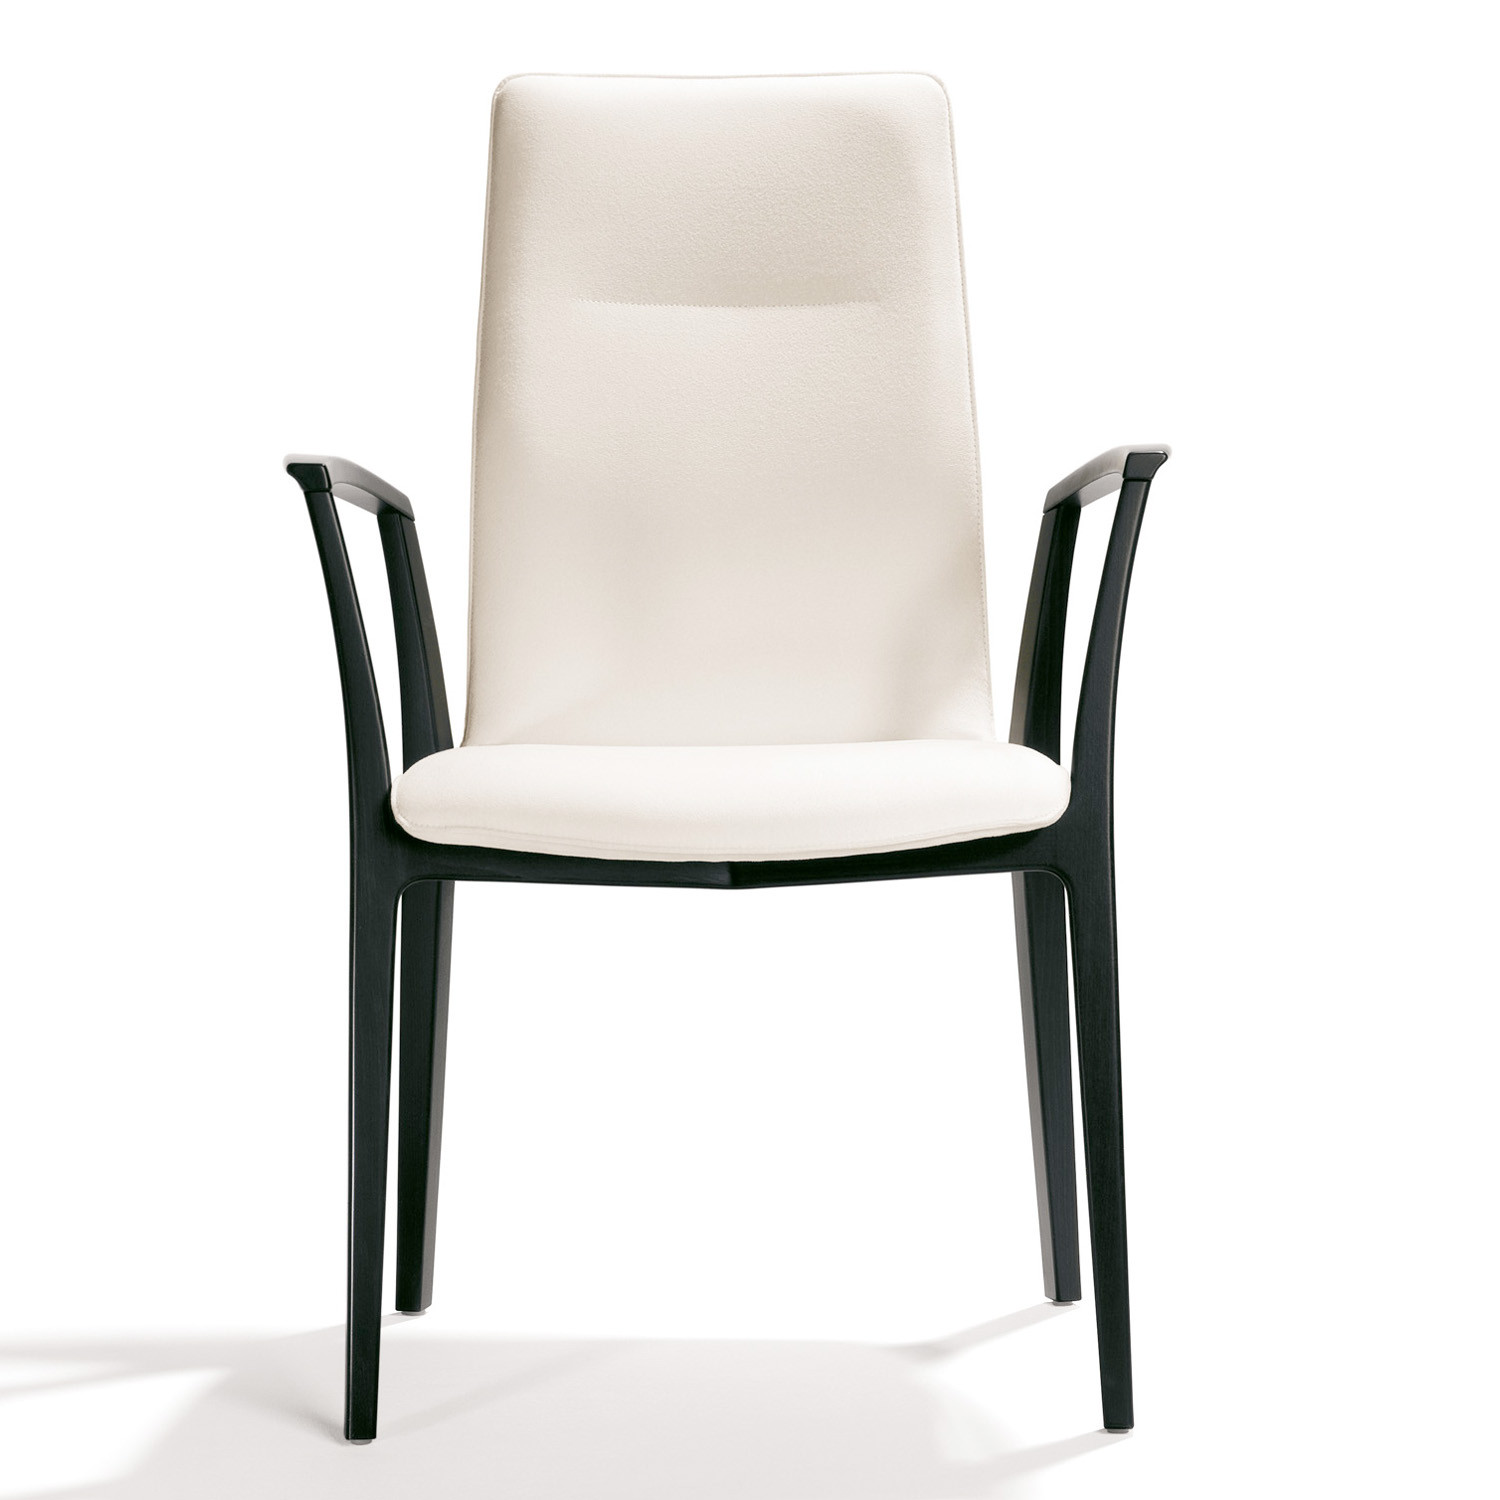 3500 Yara Healthcare Armchair